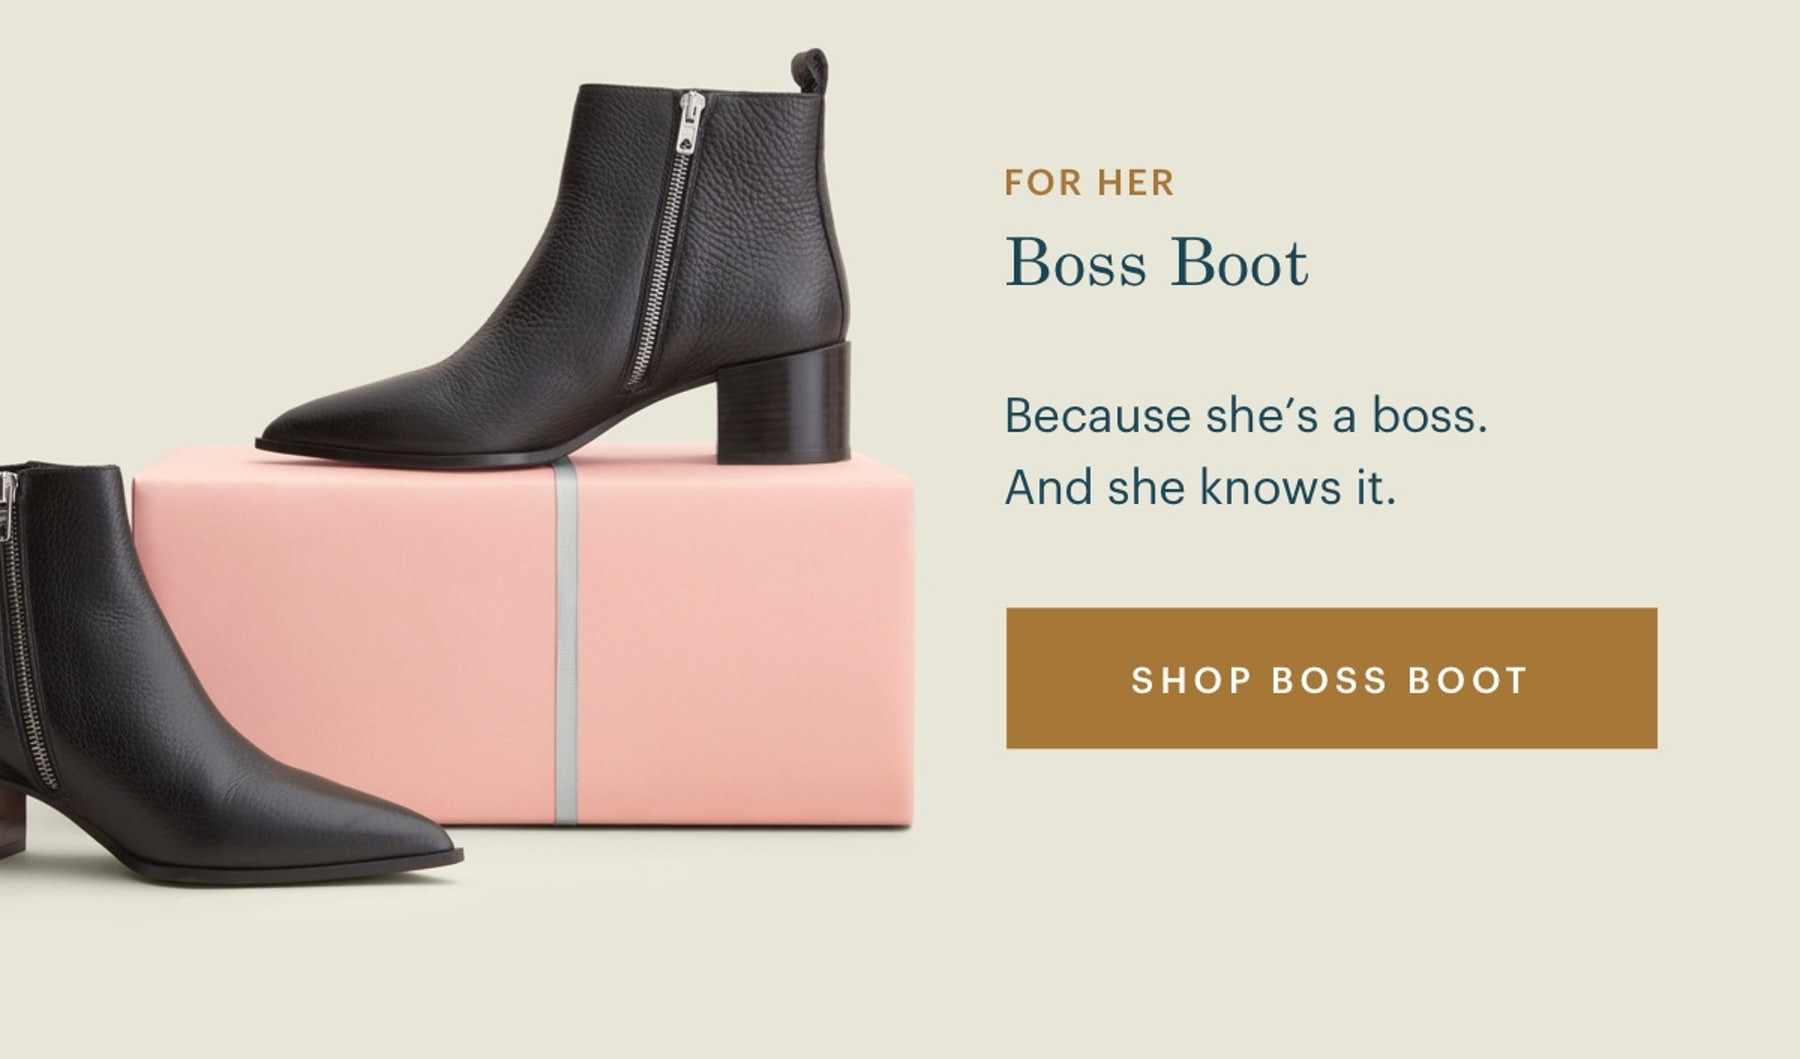 The Boss Boot. Because she's a boss. And she knows it.